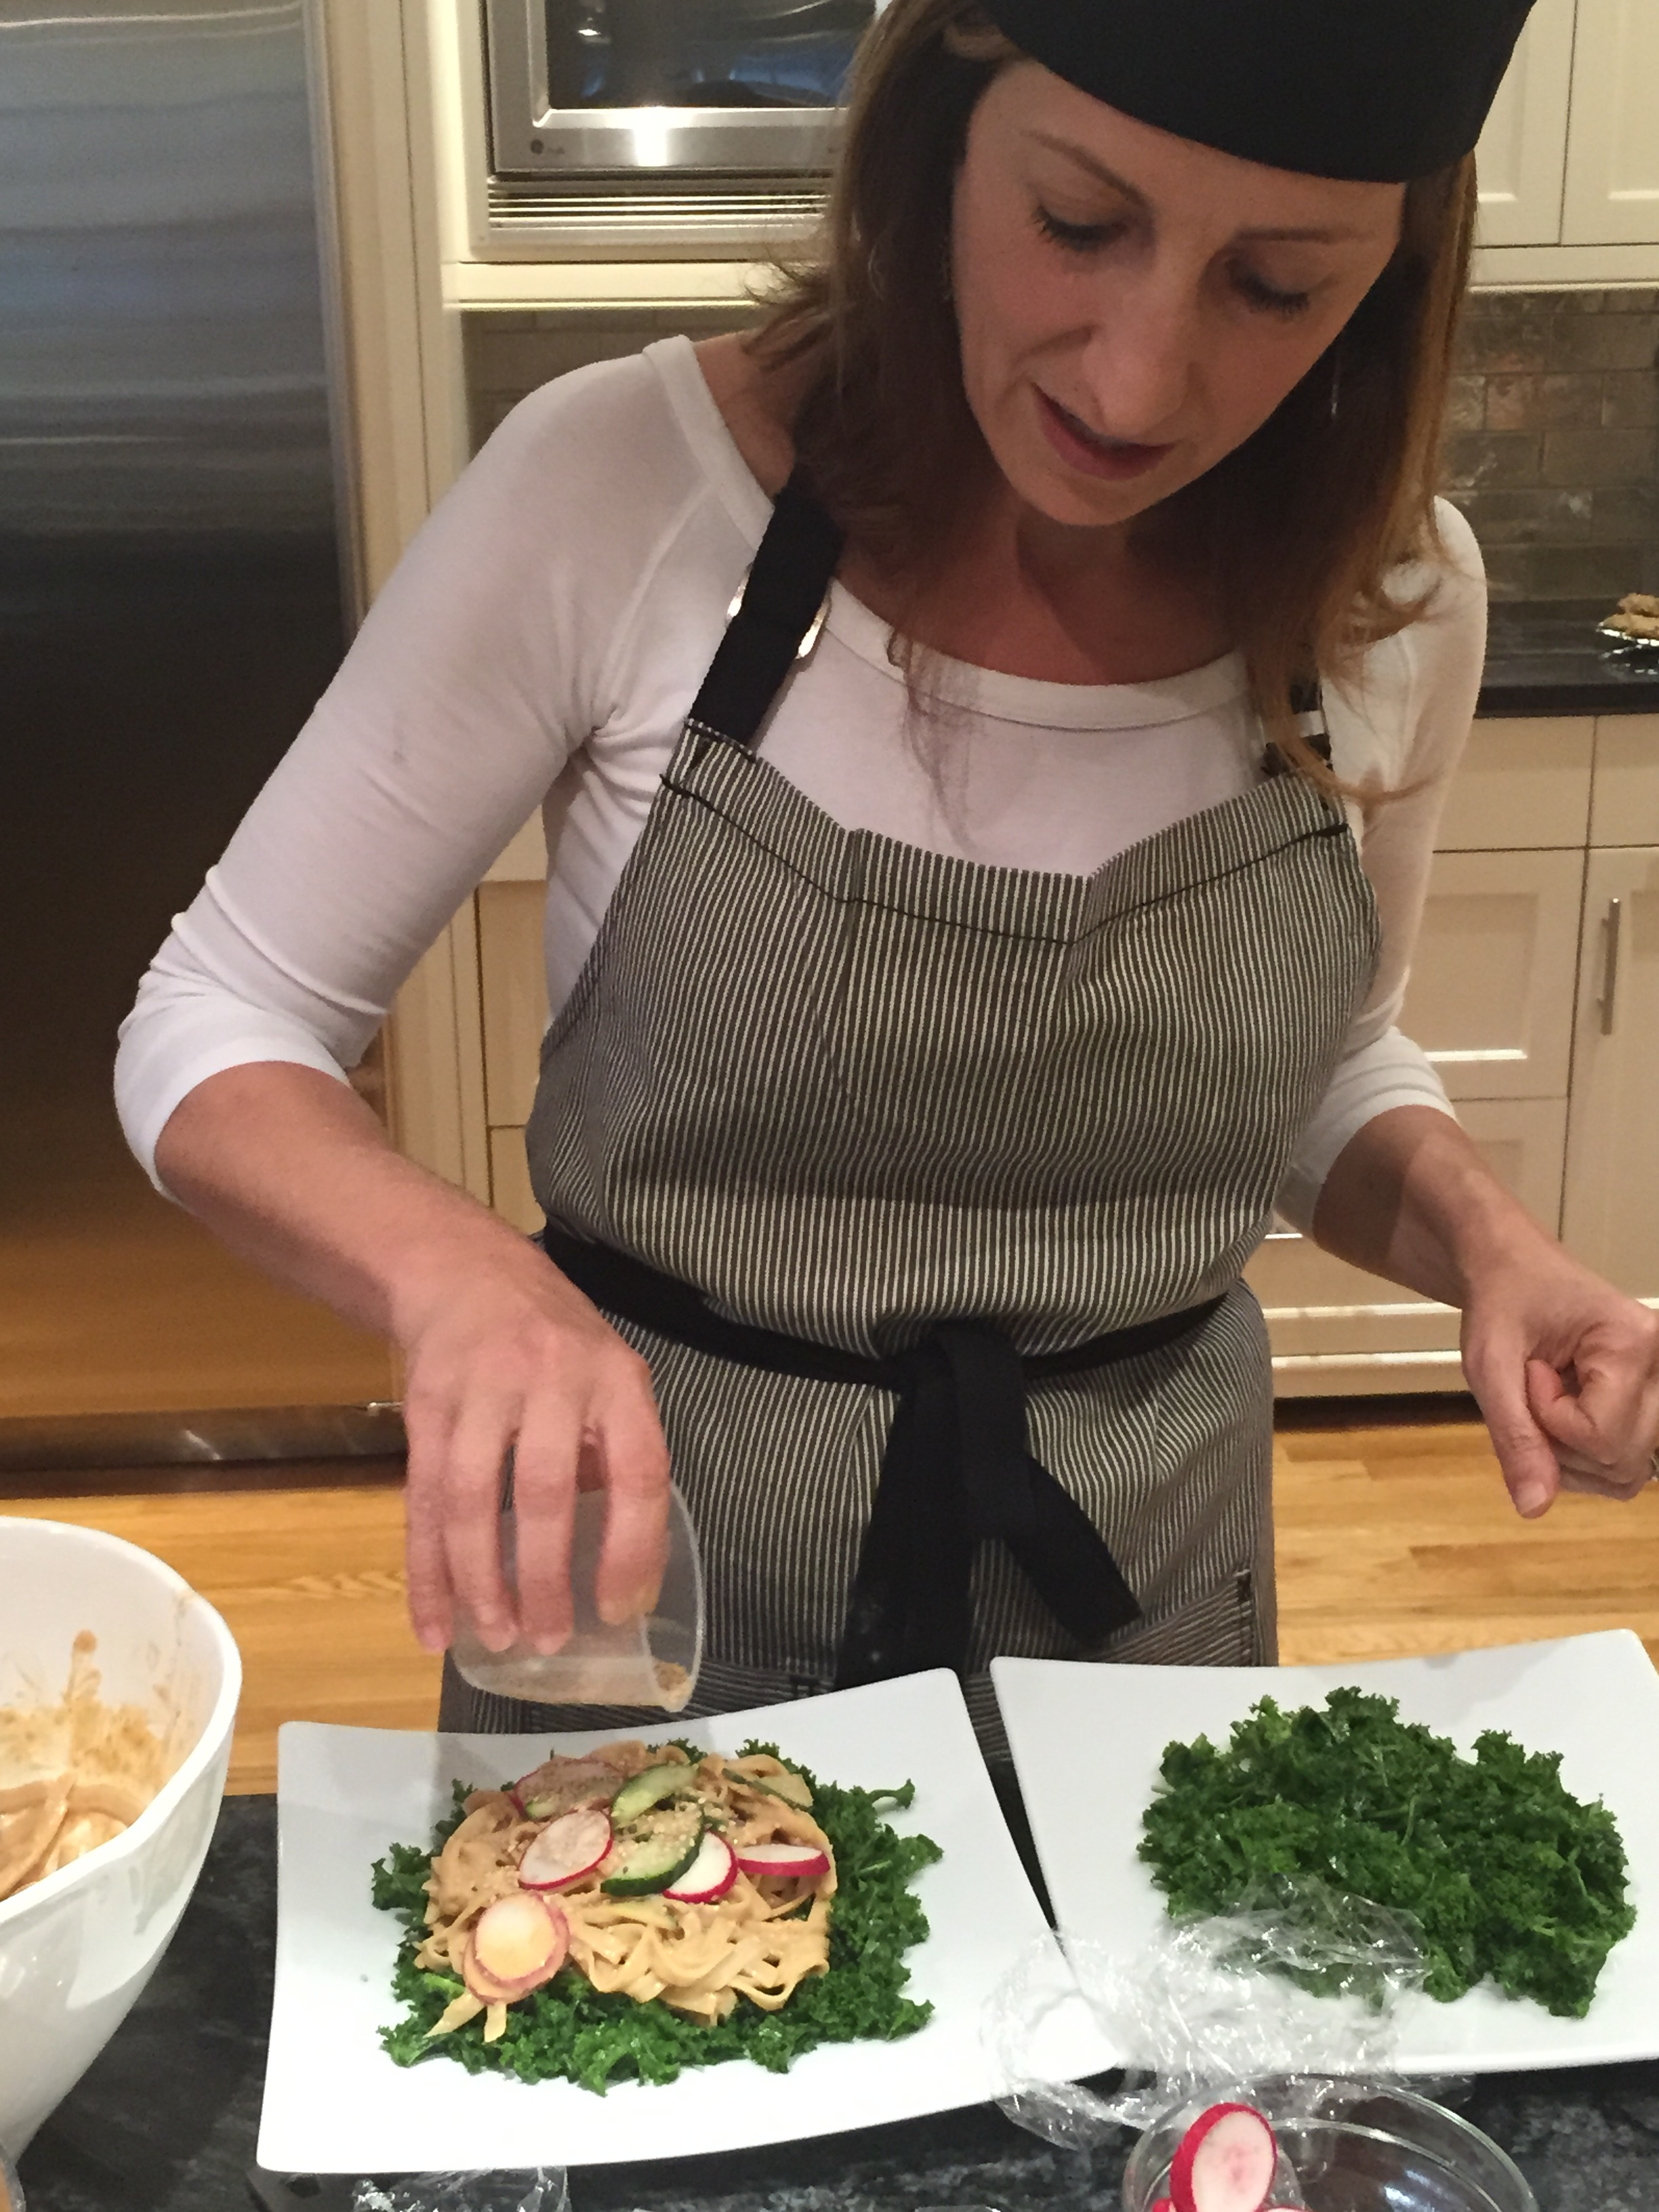 Beantown Kitchen Cooking Class- Preparing Kale, Tofu, Sesame Salad